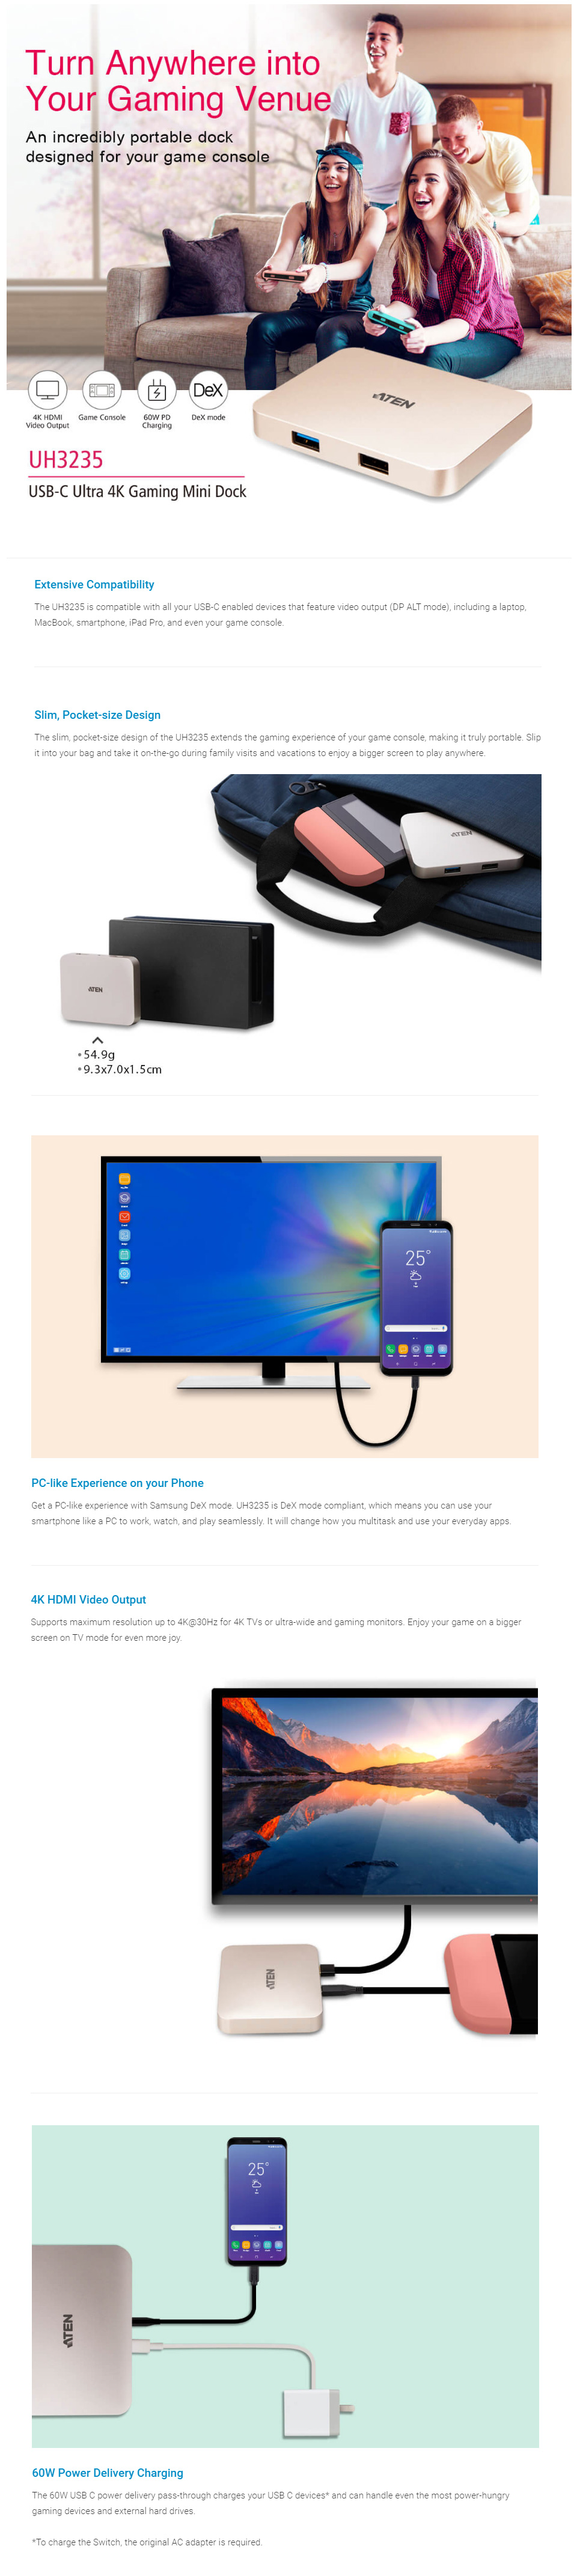 Aten USB-C 4K Ultra Mini Dock with Power Pass-through features